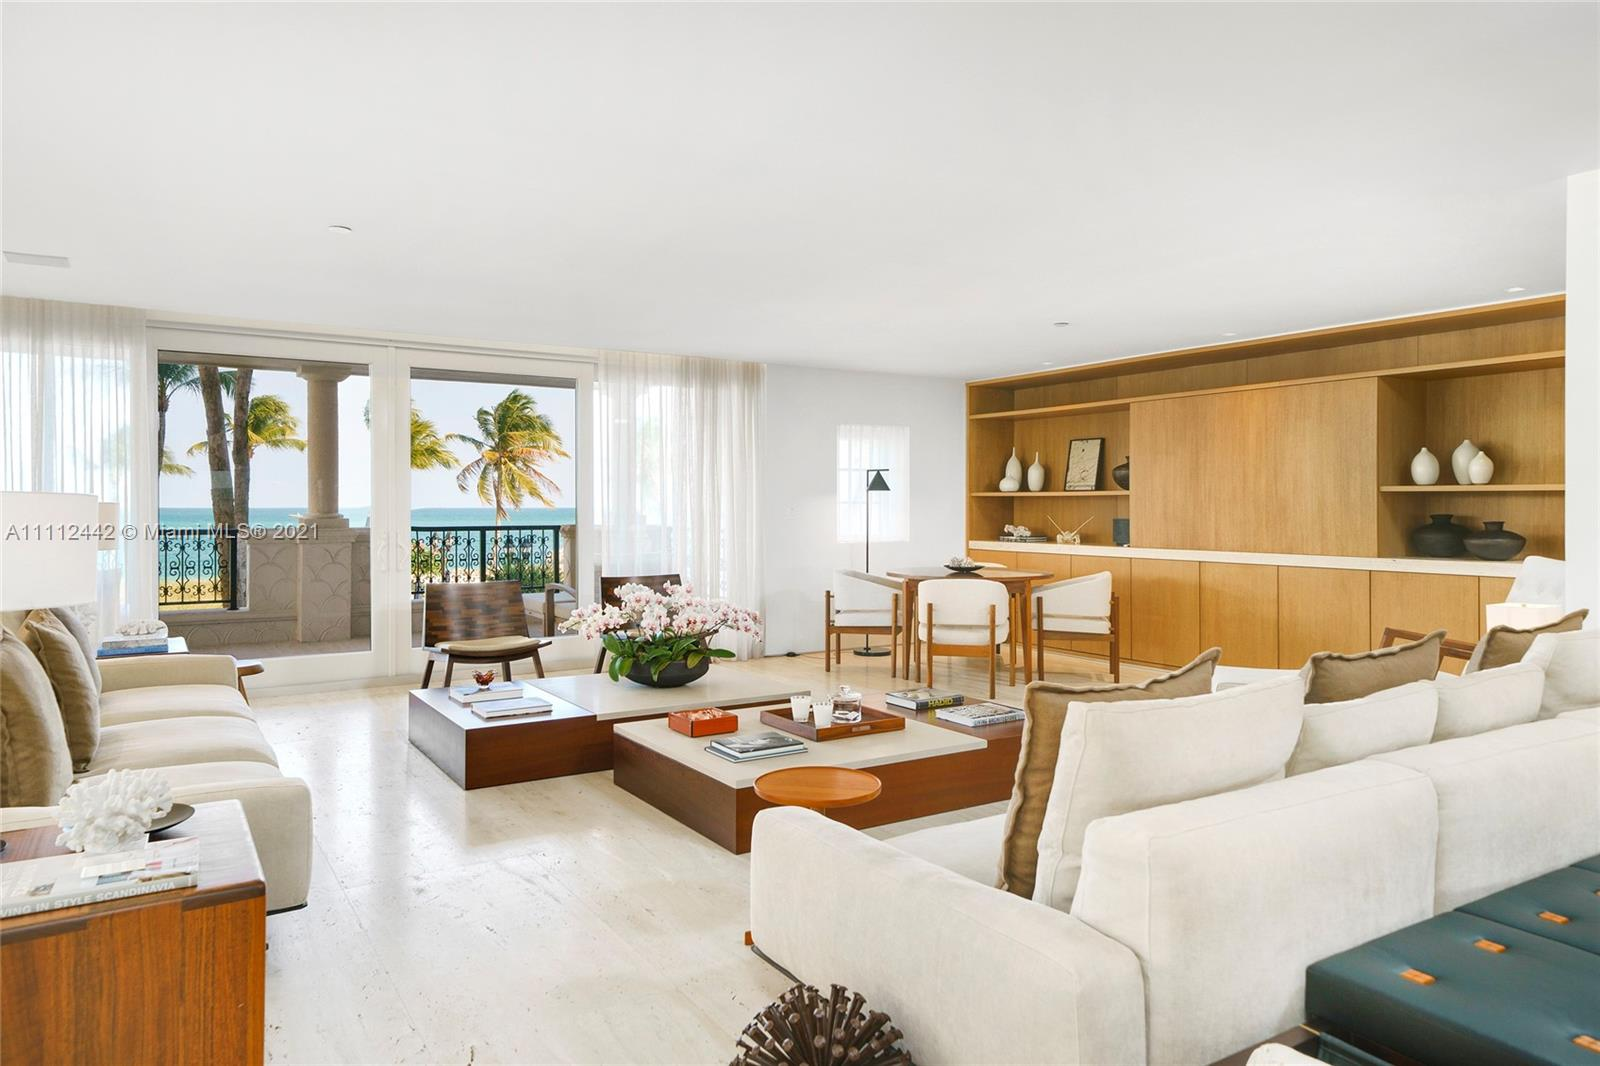 Listing Image 7821 Fisher Island Dr #7821